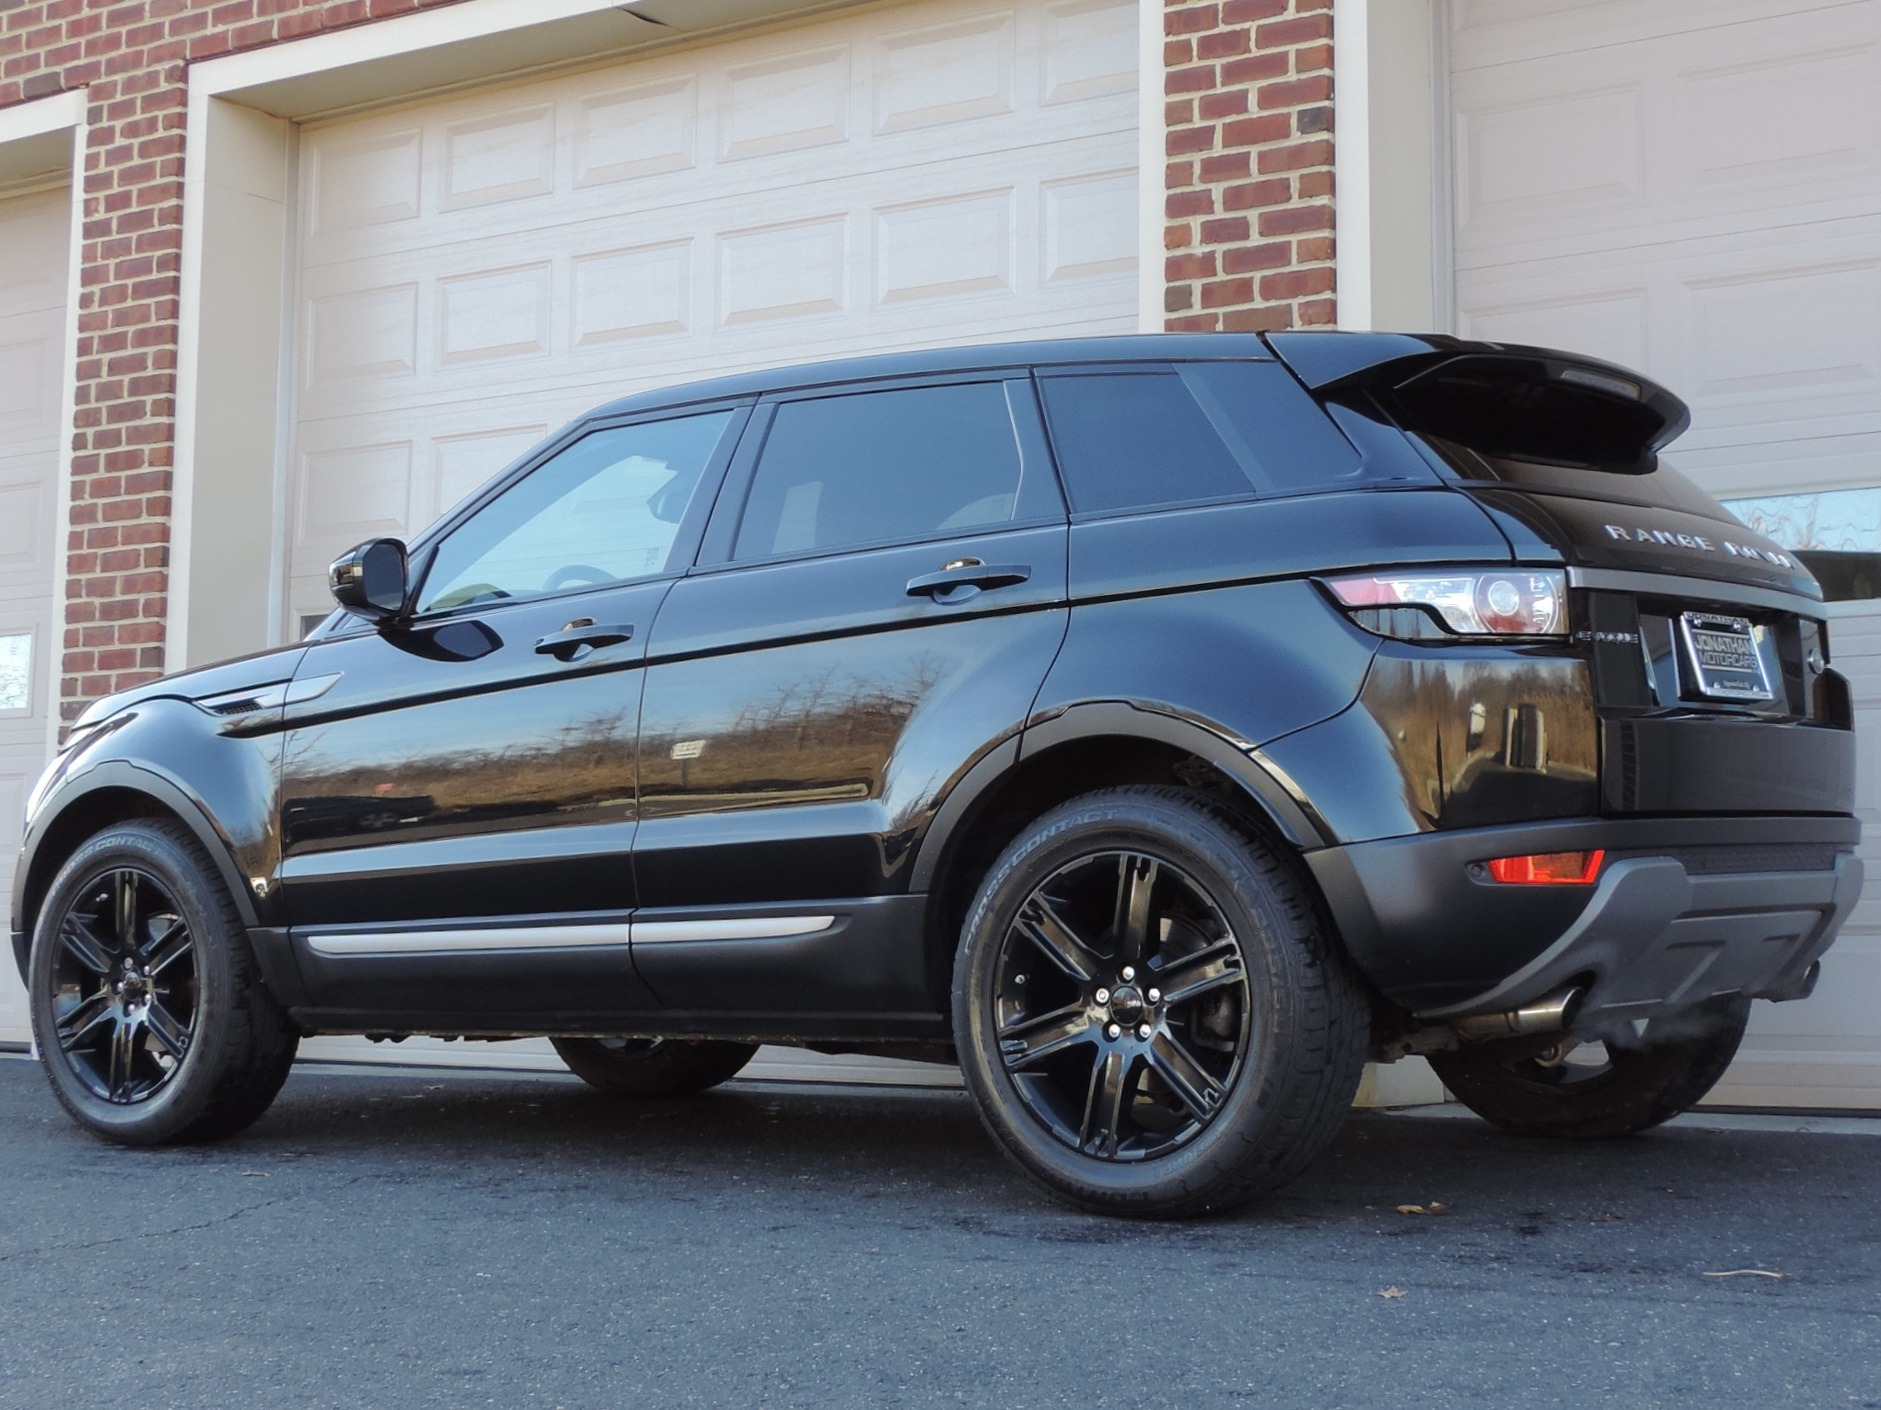 2015 Land Rover Range Rover Evoque Pure Plus Stock 963912 For Sale